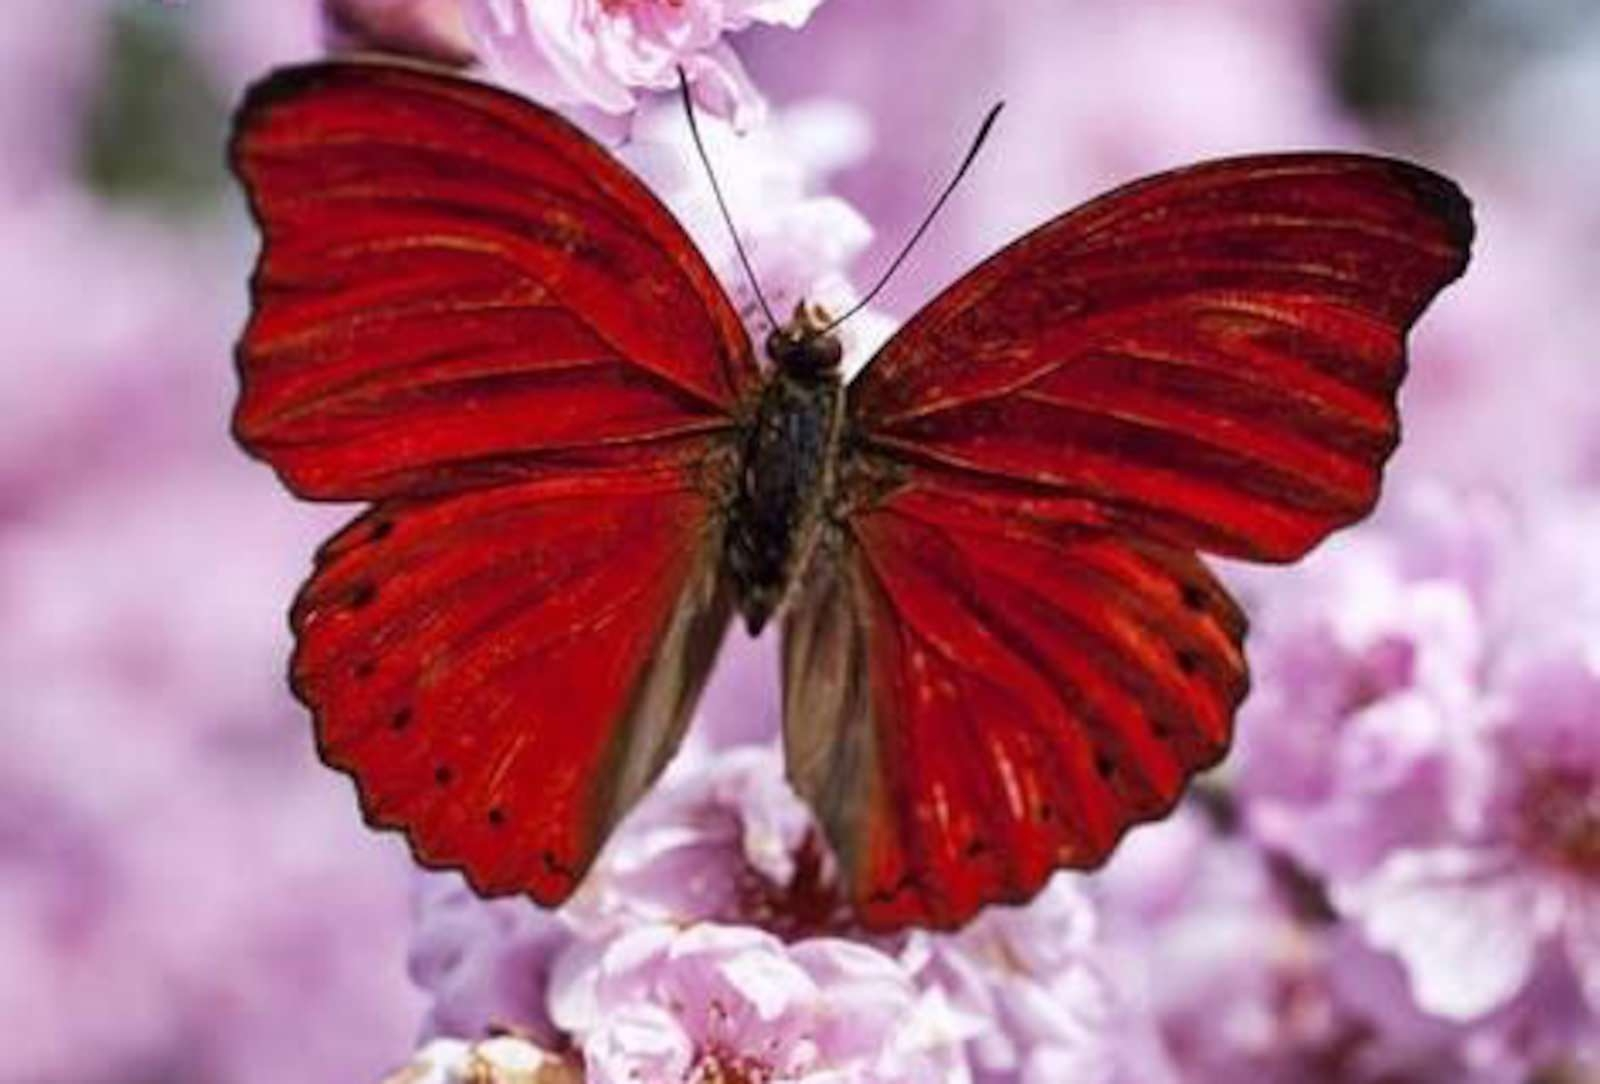 Red Butterfly on Pink Flowers Wallpaper